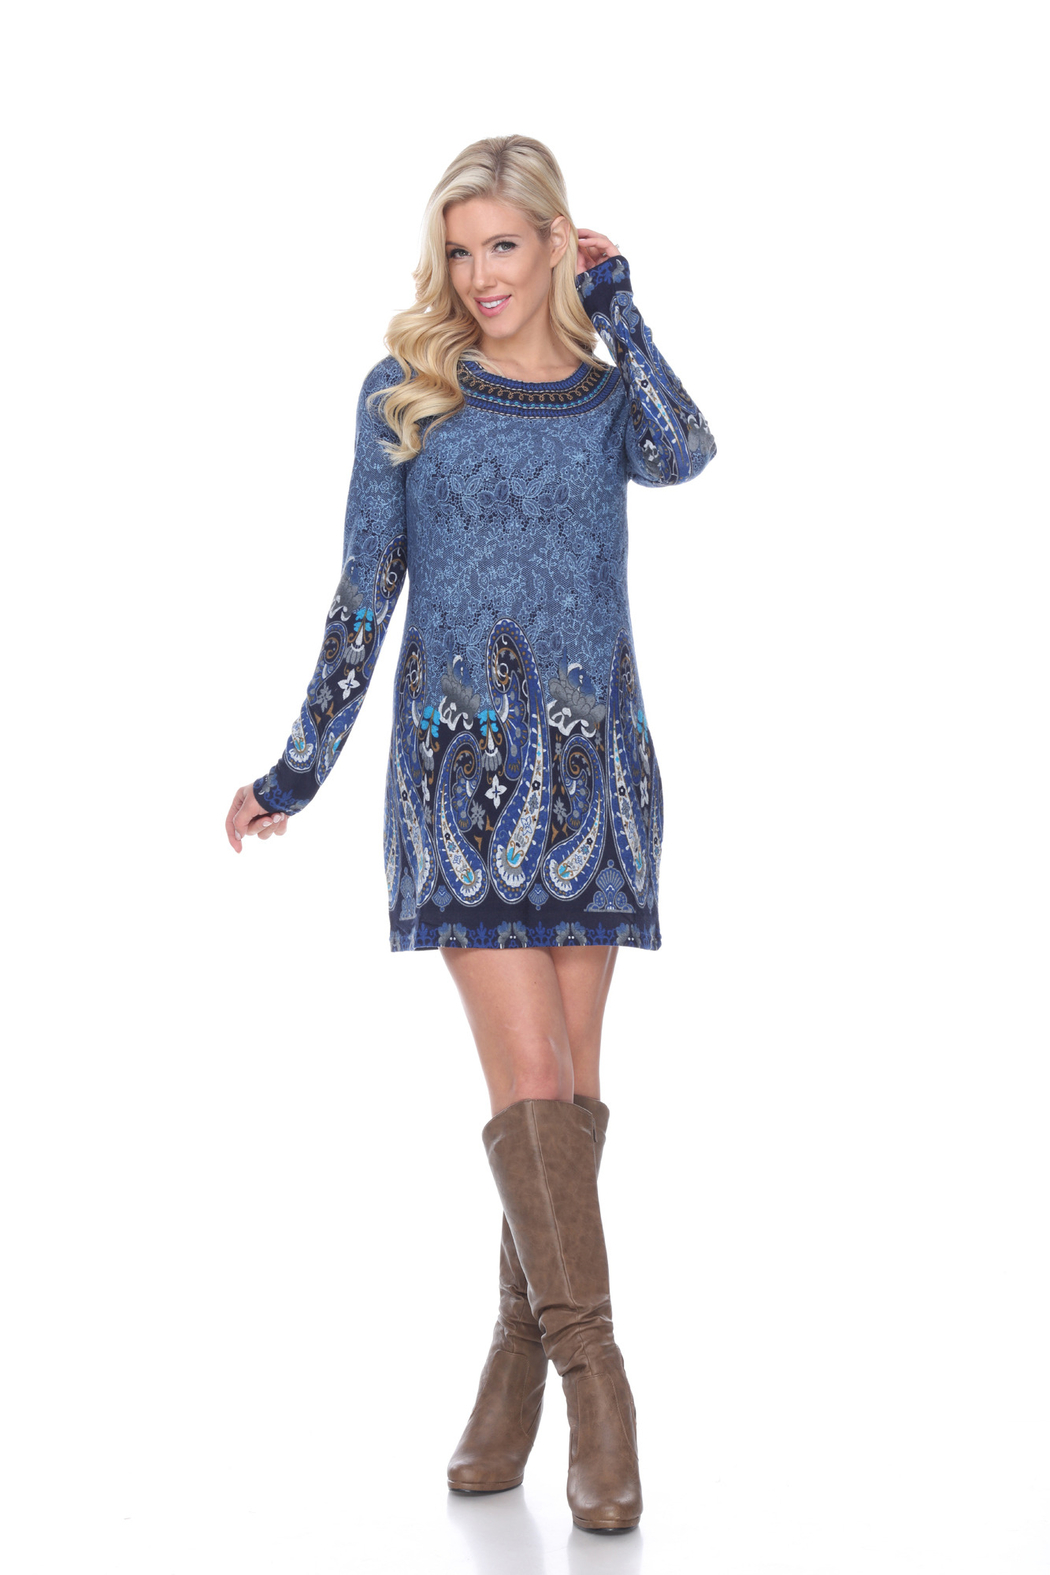 WhiteMark White Mark's Paisley Print Embroidered Sweater Dress - Front Cropped Image